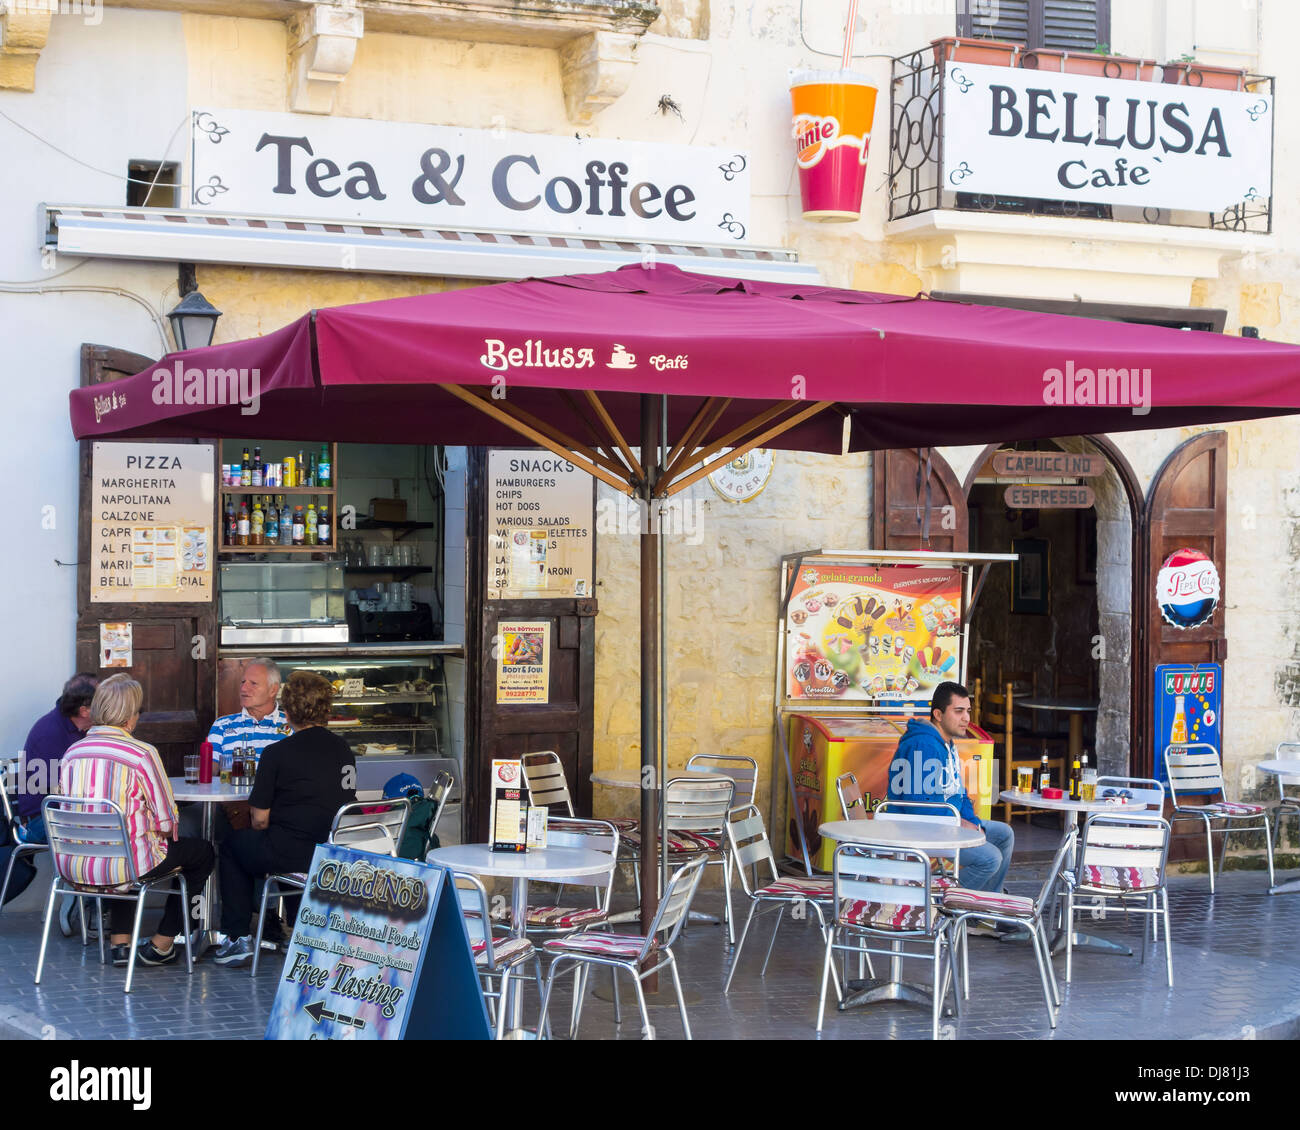 The sights of, overlooking, around and on the Island of Gozo Isle of Calypso Bellusa Cafe shop front canopy shade outside path - Stock Image